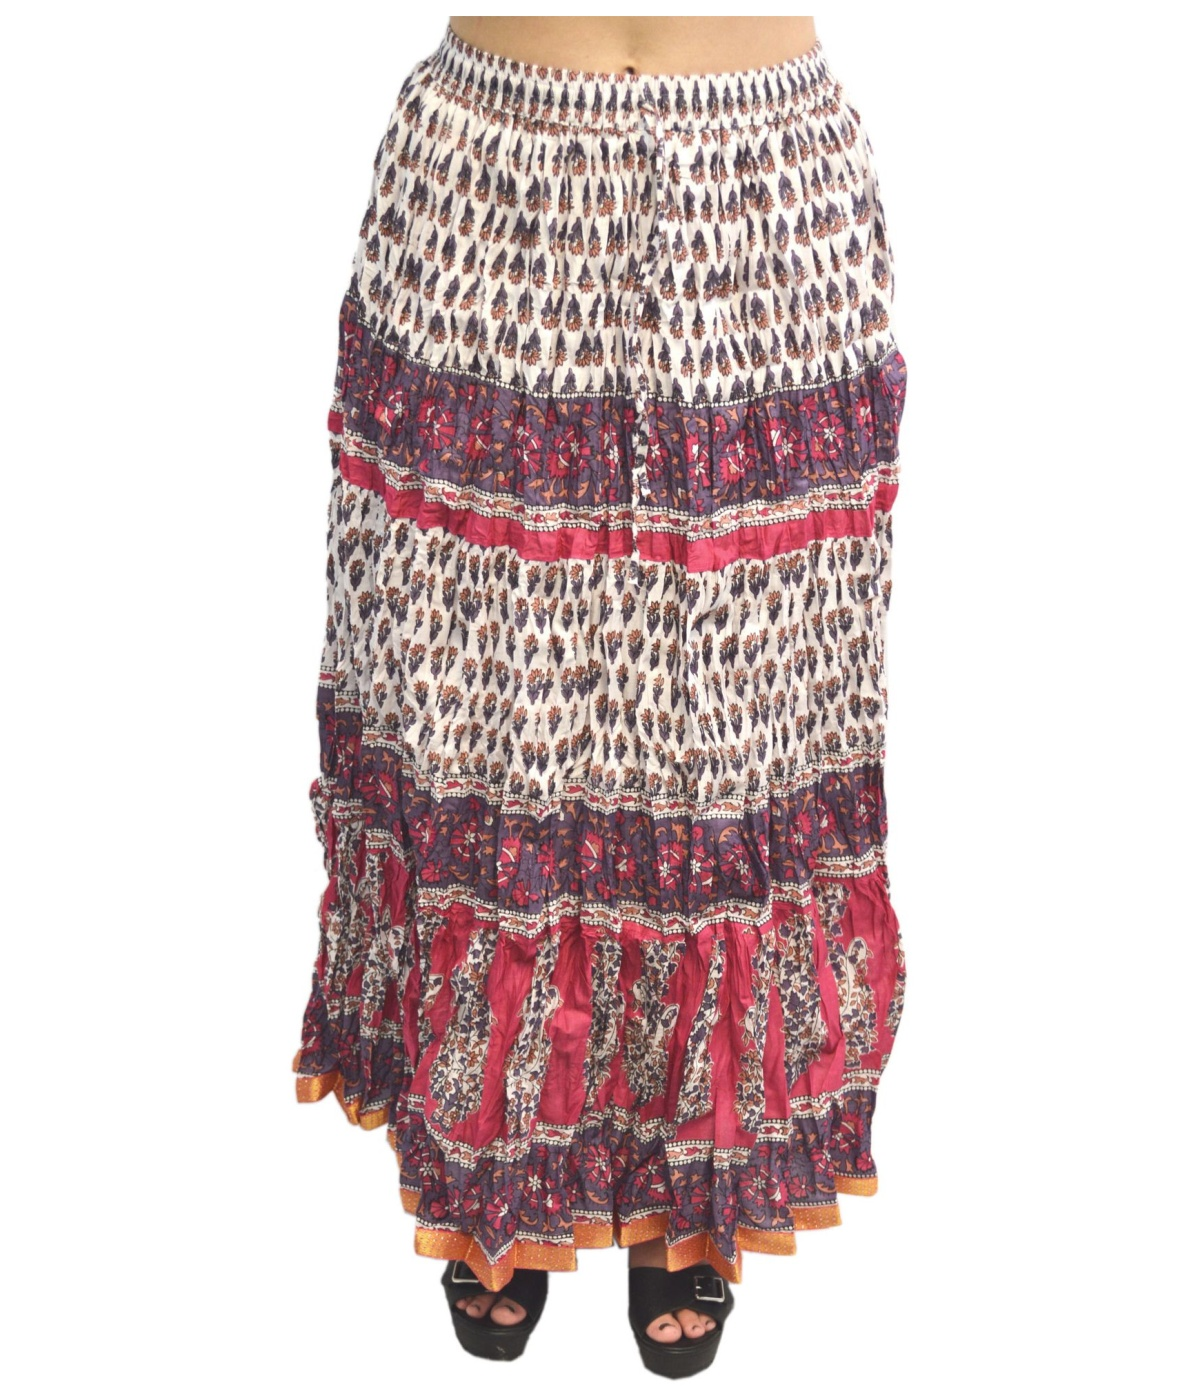 It is a beautiful Cotton Full Length Skirt With Indigo Print. It Has Draw String Band Which Can Fit Upto Waist Size Inches. The Length of the skirt is 40 Inches.